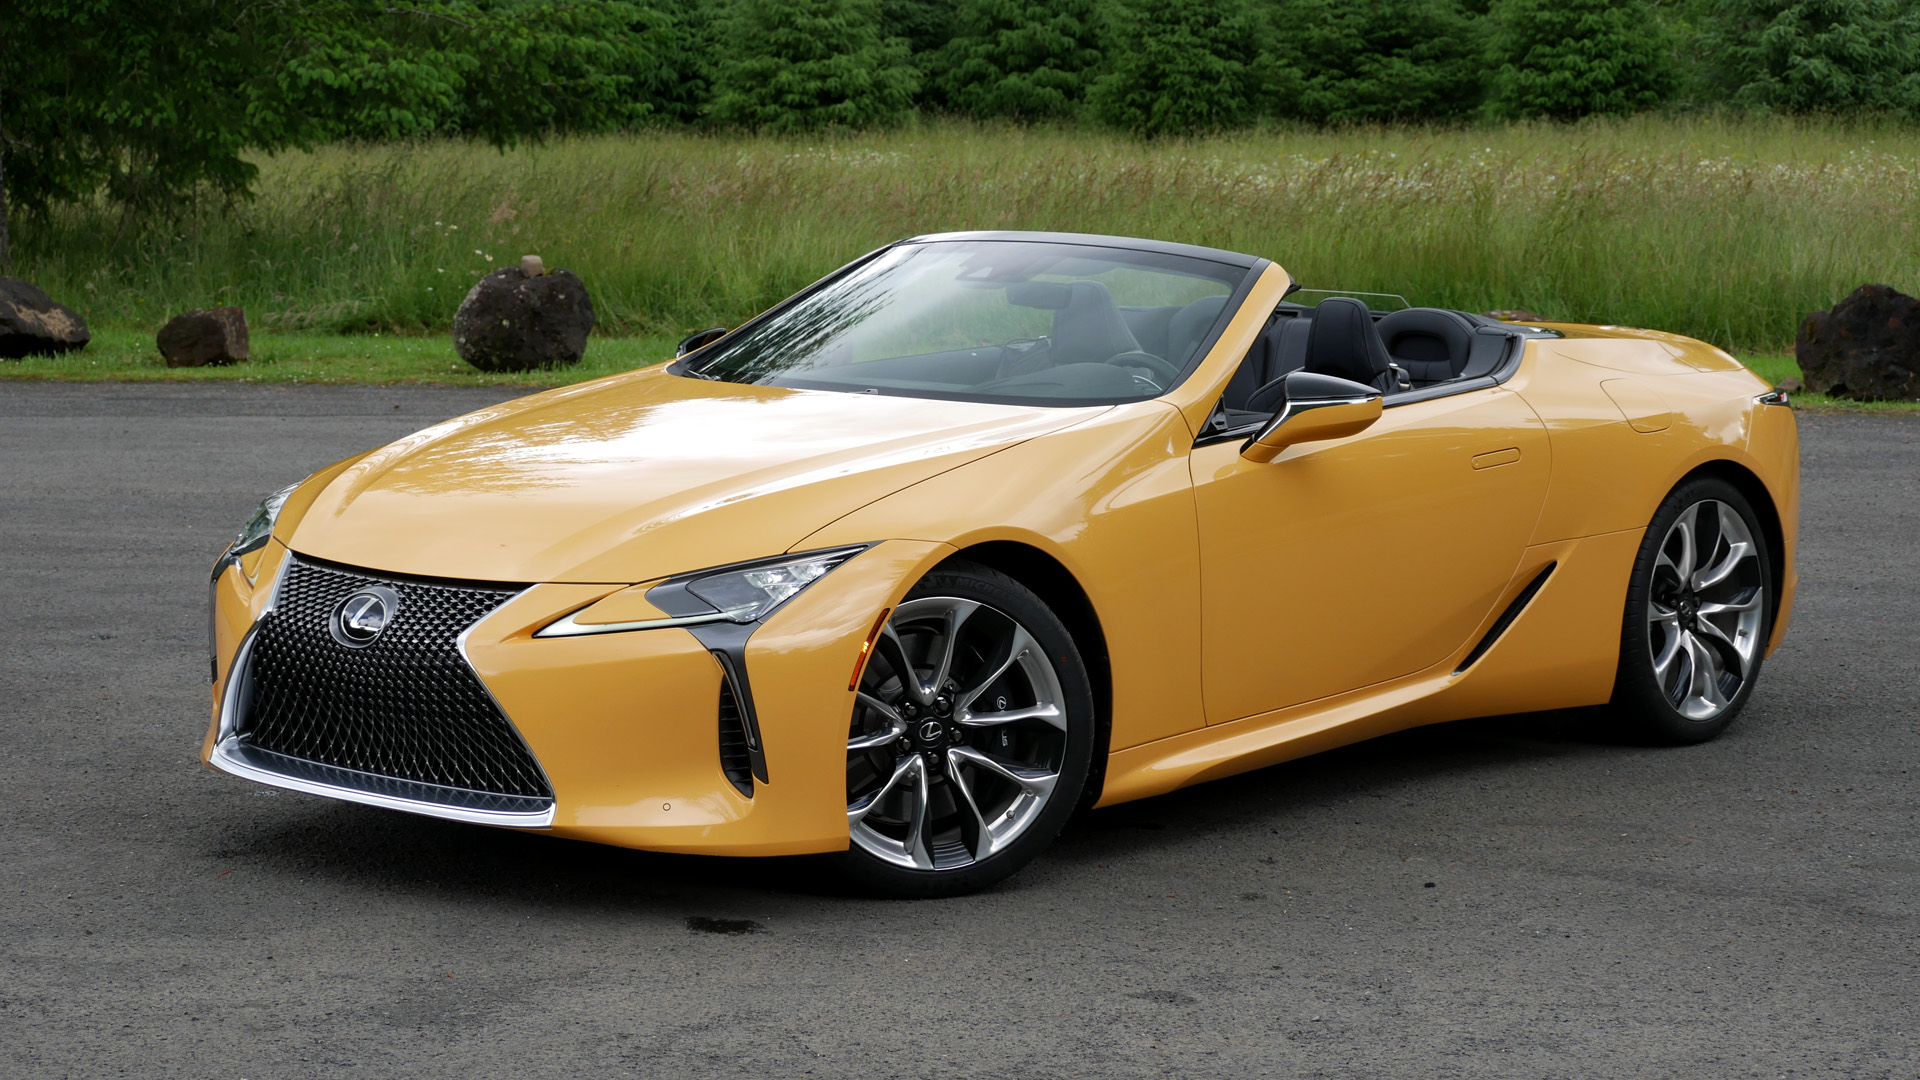 2021 Lexus Lc 500 Convertible Review First Drive Pictures Roof Performance Autoblog